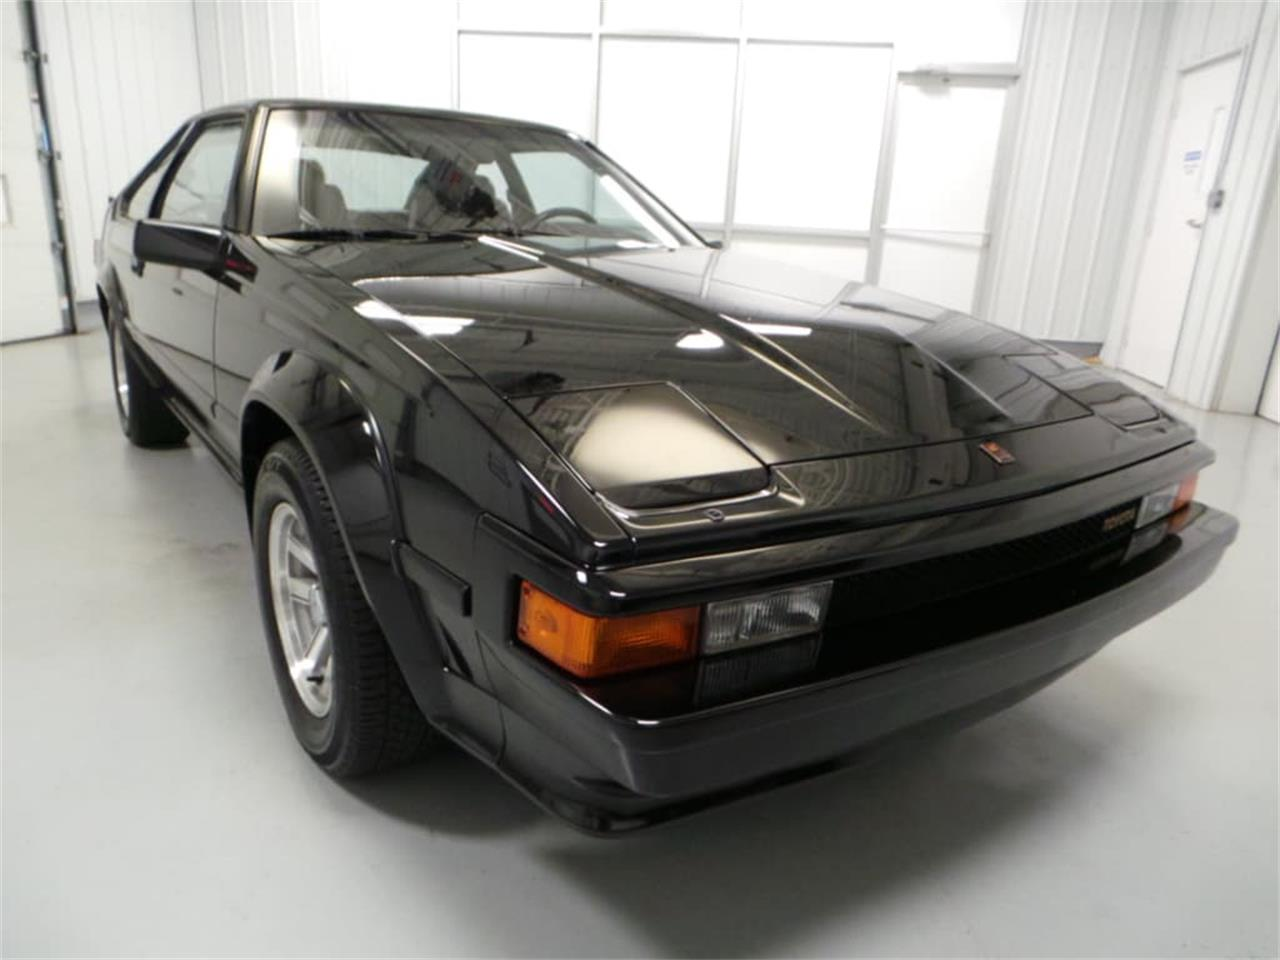 Large Picture of 1984 Toyota Celica - $17,950.00 Offered by Duncan Imports & Classic Cars - JLCQ